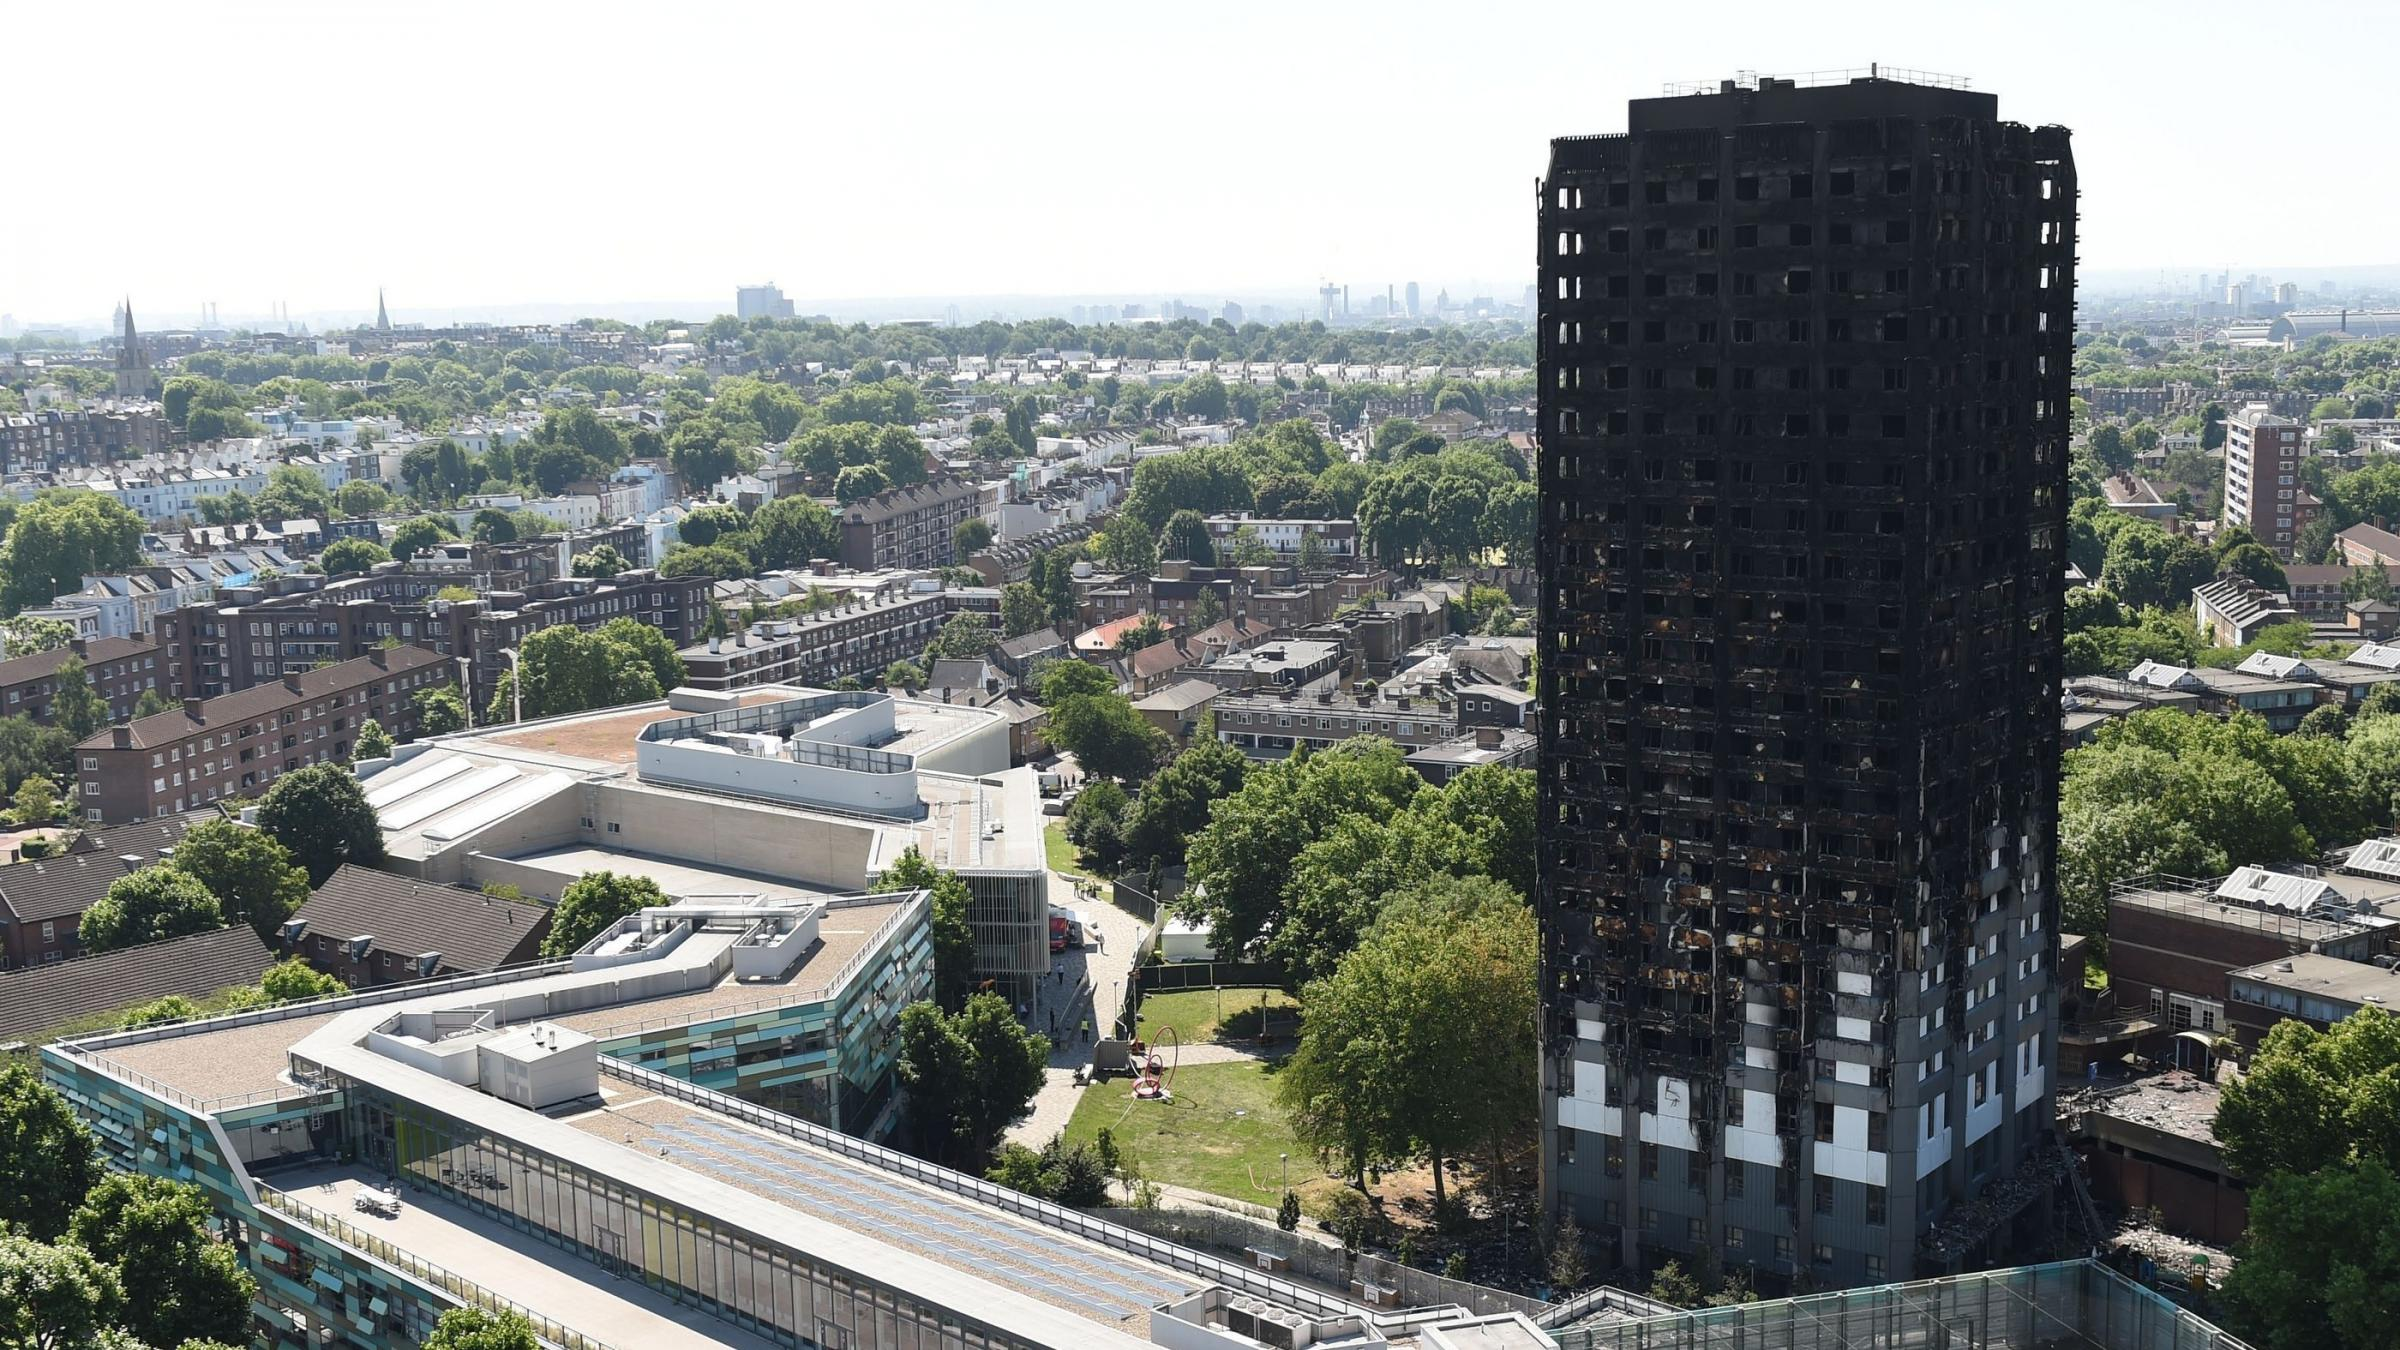 79 presumed dead in London fire